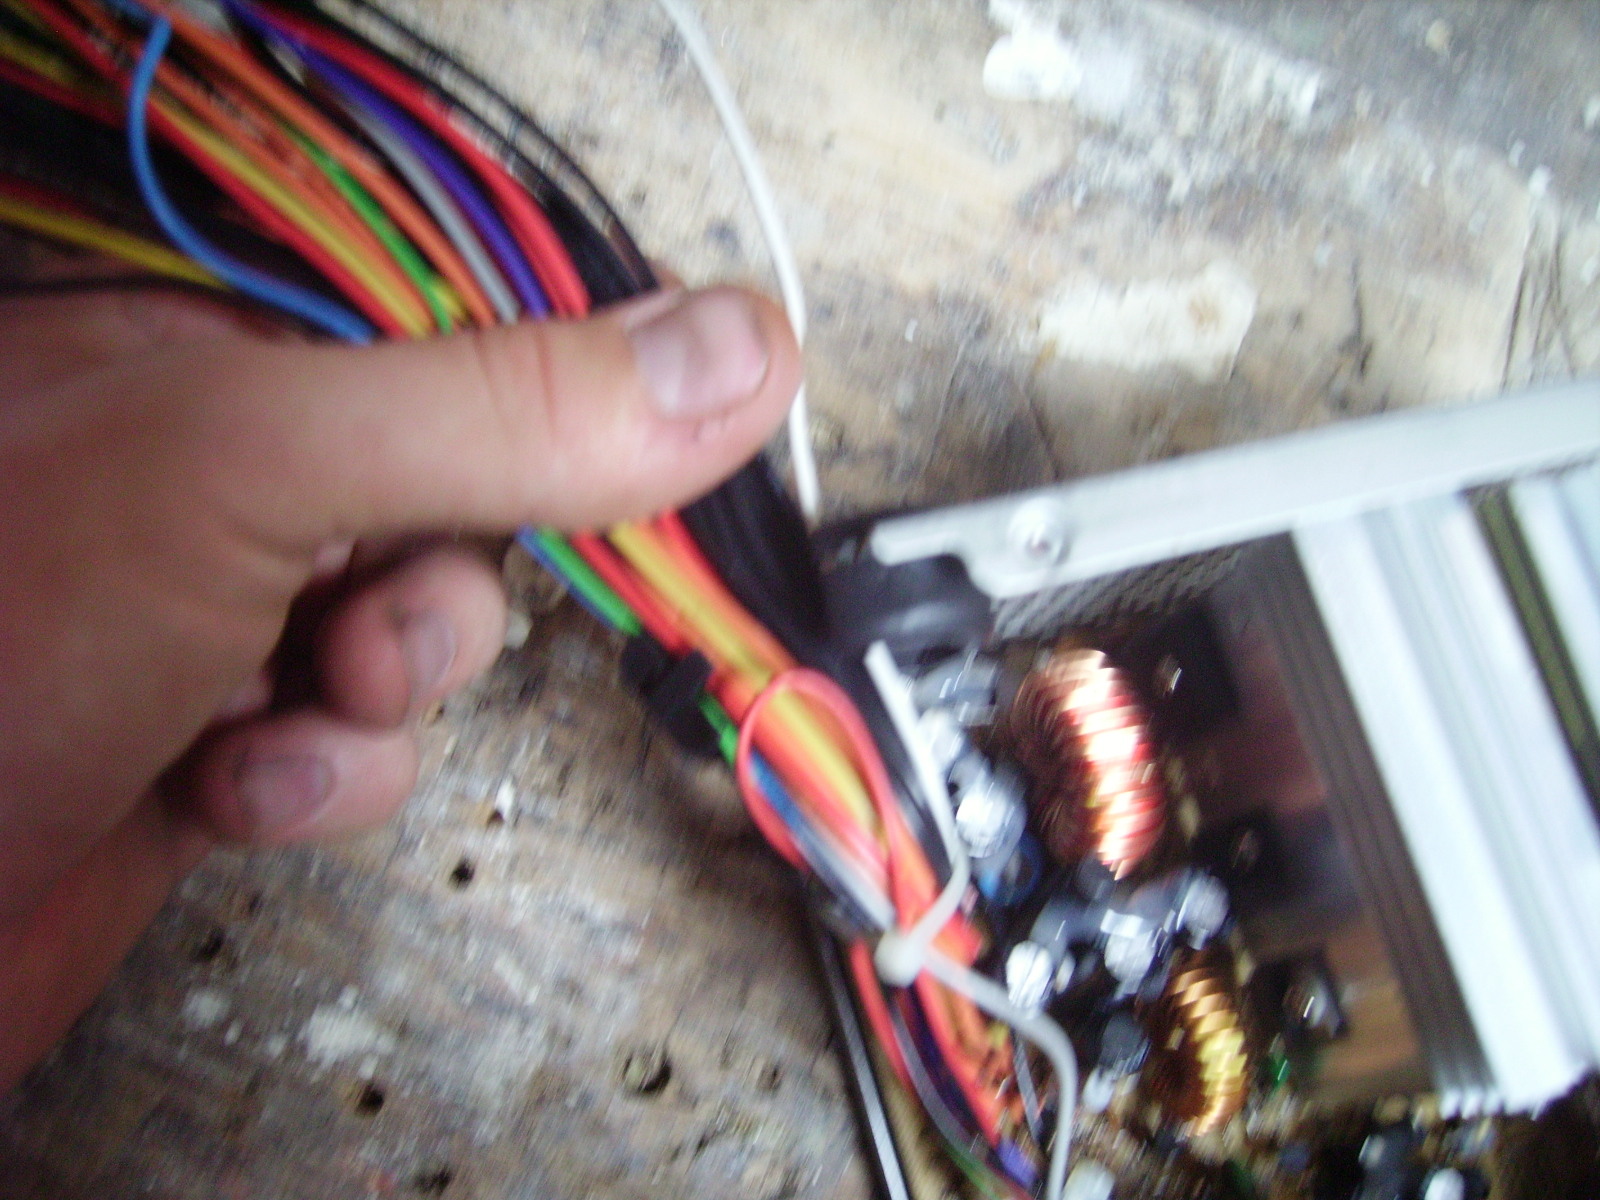 Picture of Mutilating the PSU